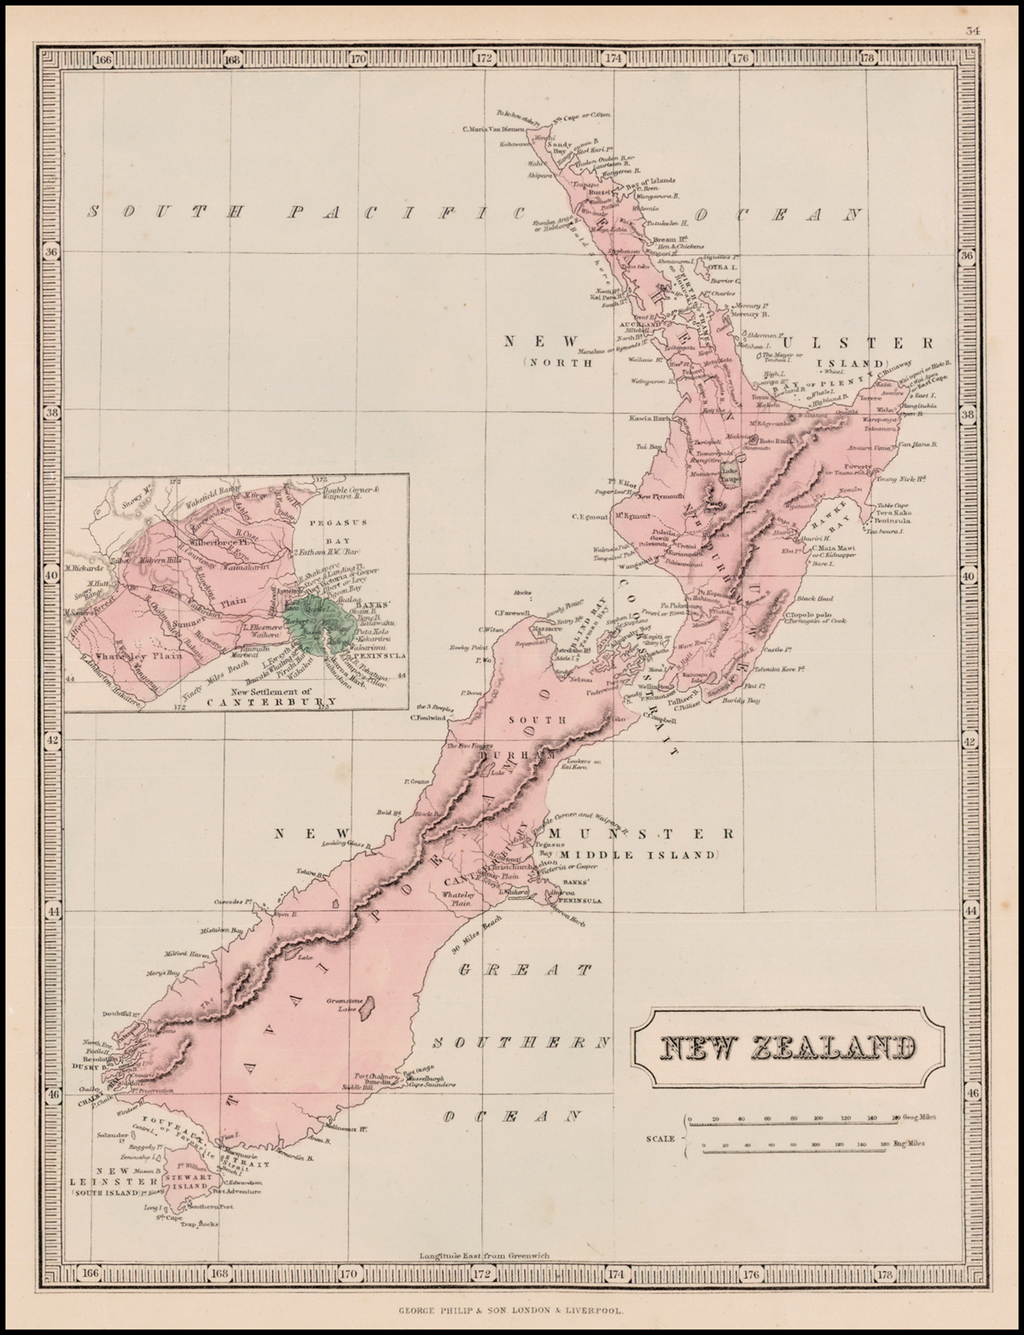 New Zealand By George Philip & Son